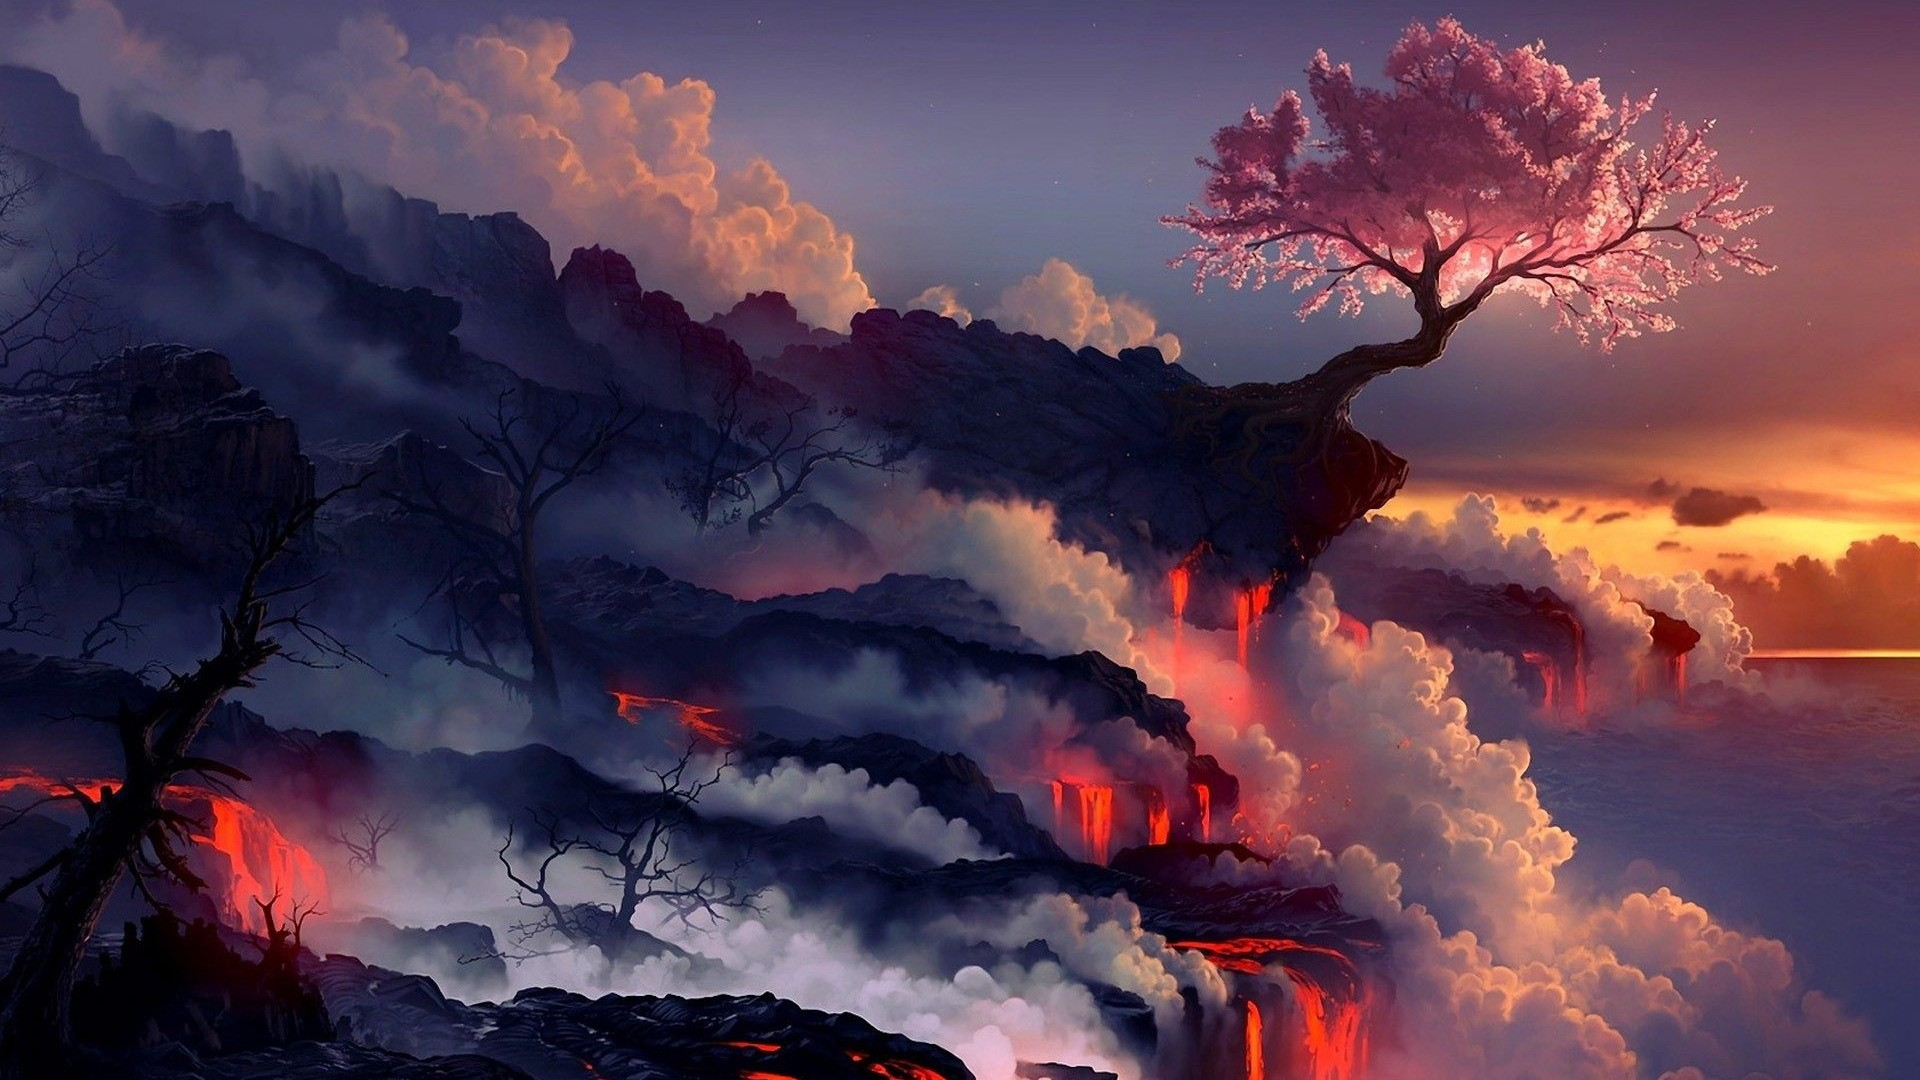 sakura-tree-lava-fantasy-wallpaper-1920×1080.jpg (1920×1080) | Pictures |  Pinterest | Internet